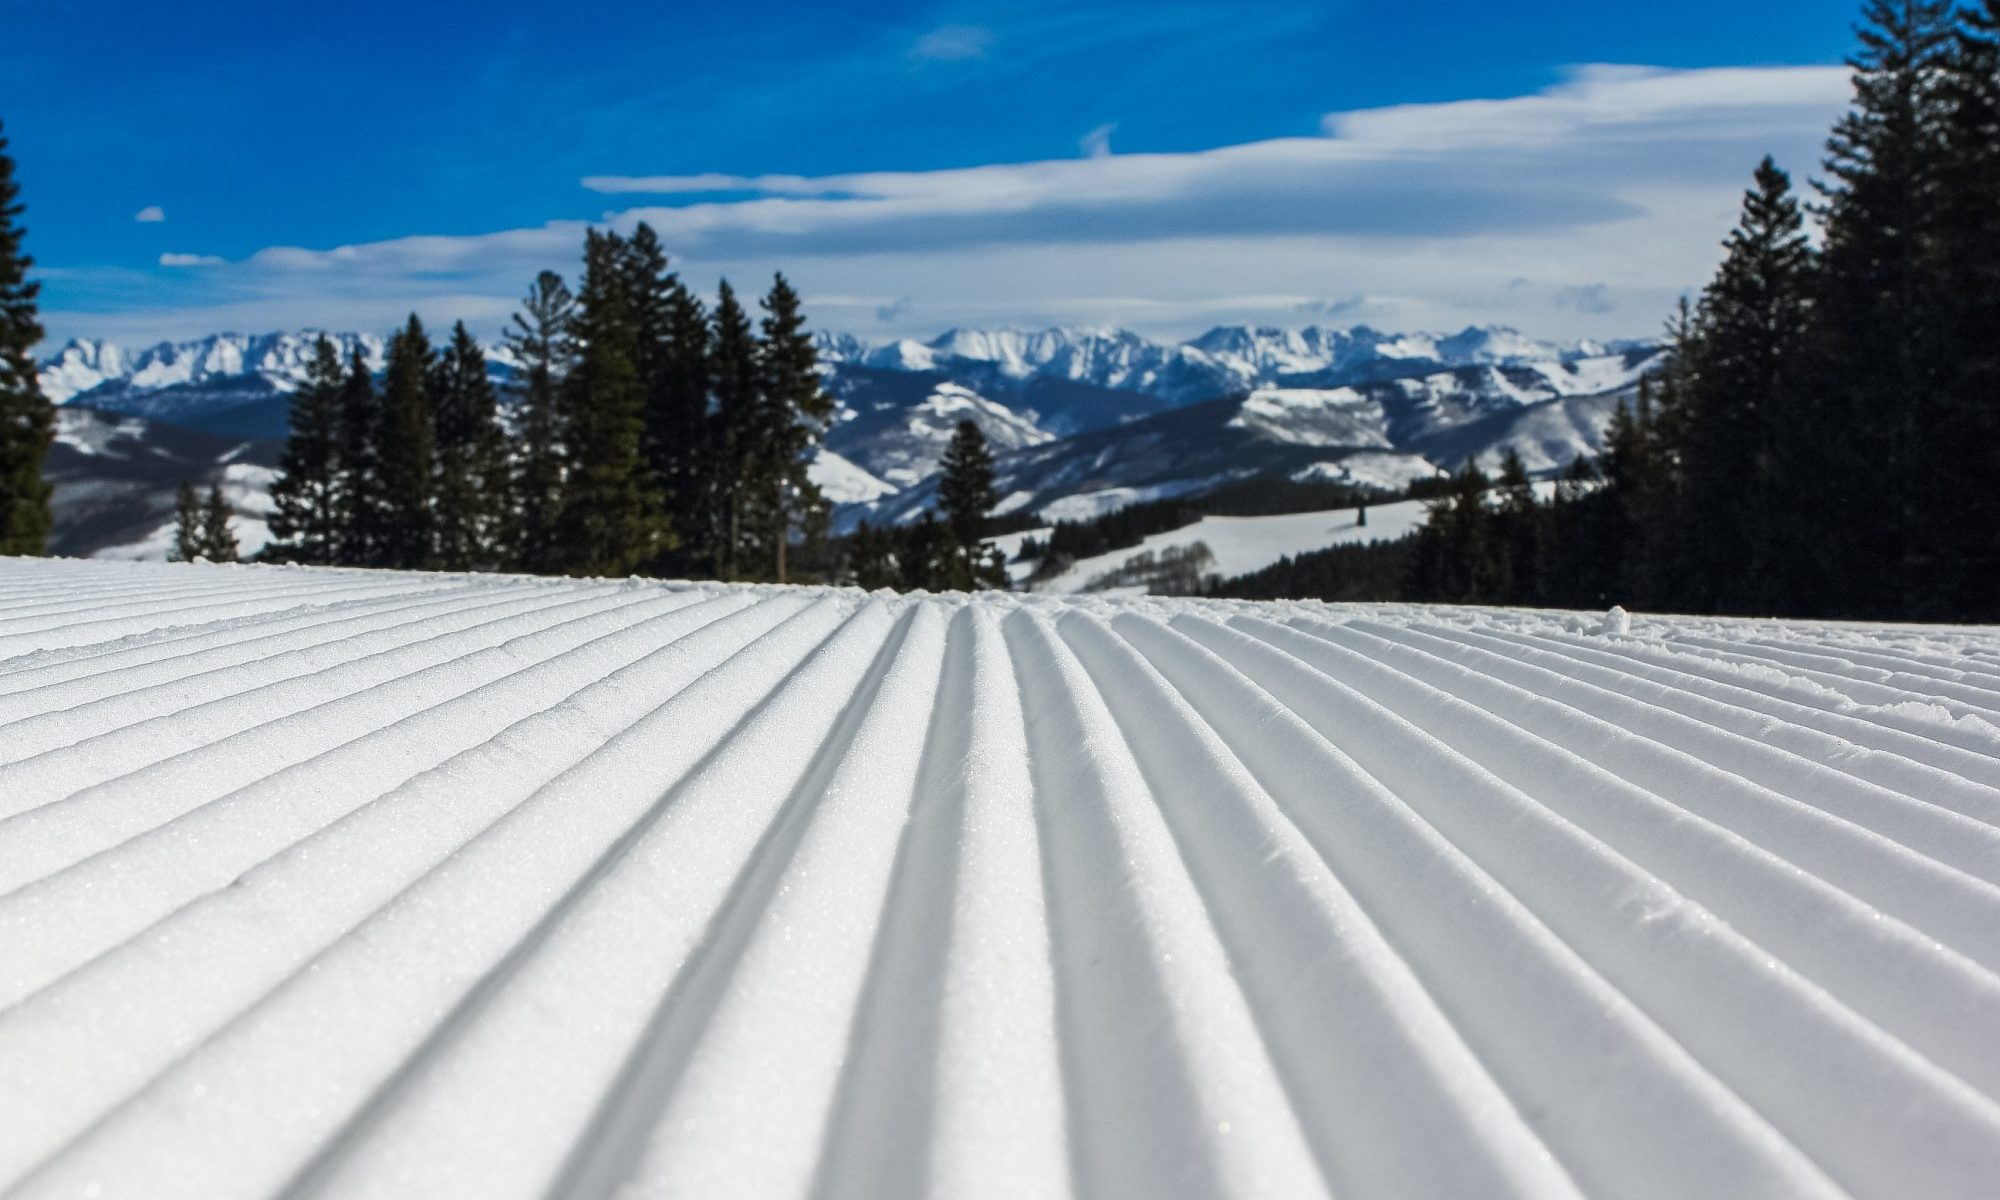 Snow Groomed. Photo by John Price. Unsplash. How ski grooming patterns can affect visibility in the snow.